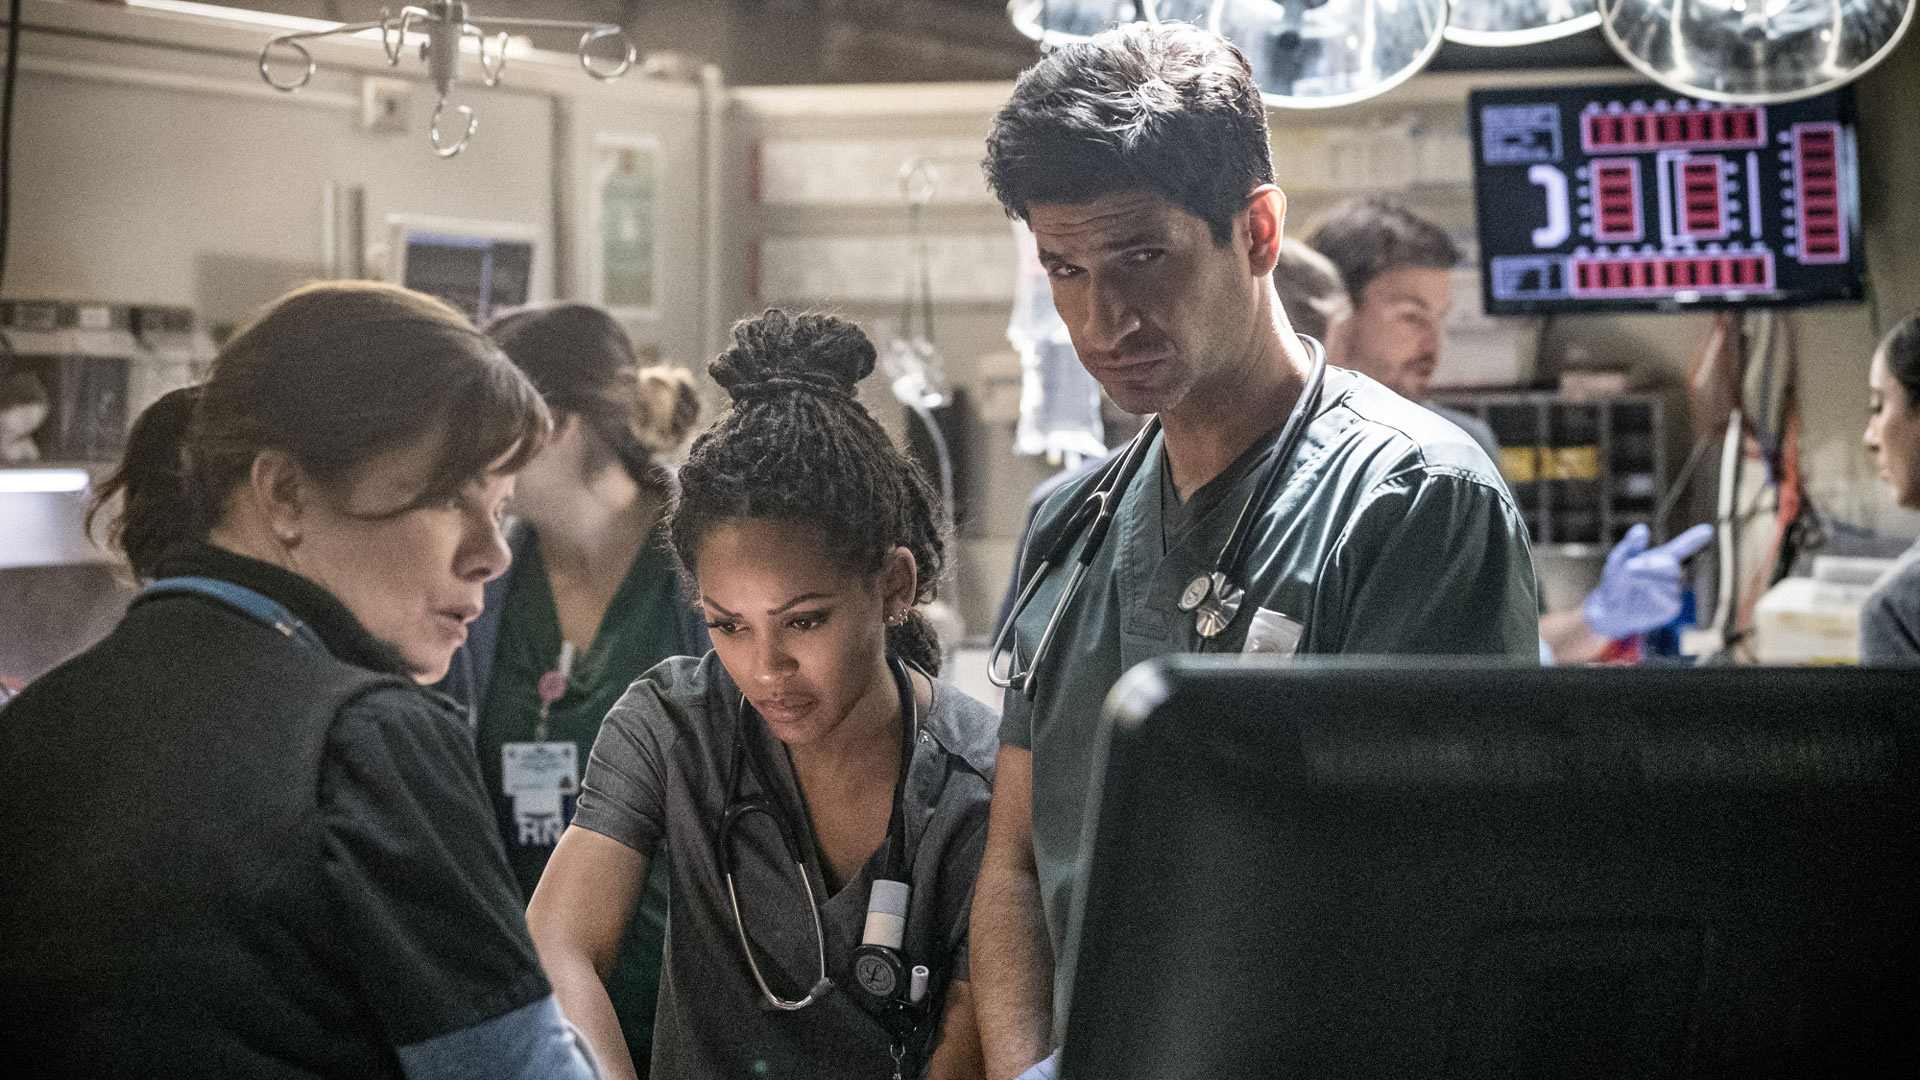 Marcia Gay Harden as Dr. Leanne Rorish, Meagan Good as Dr. Grace Adams, and Raza Jaffrey as Dr. Neal Hudson